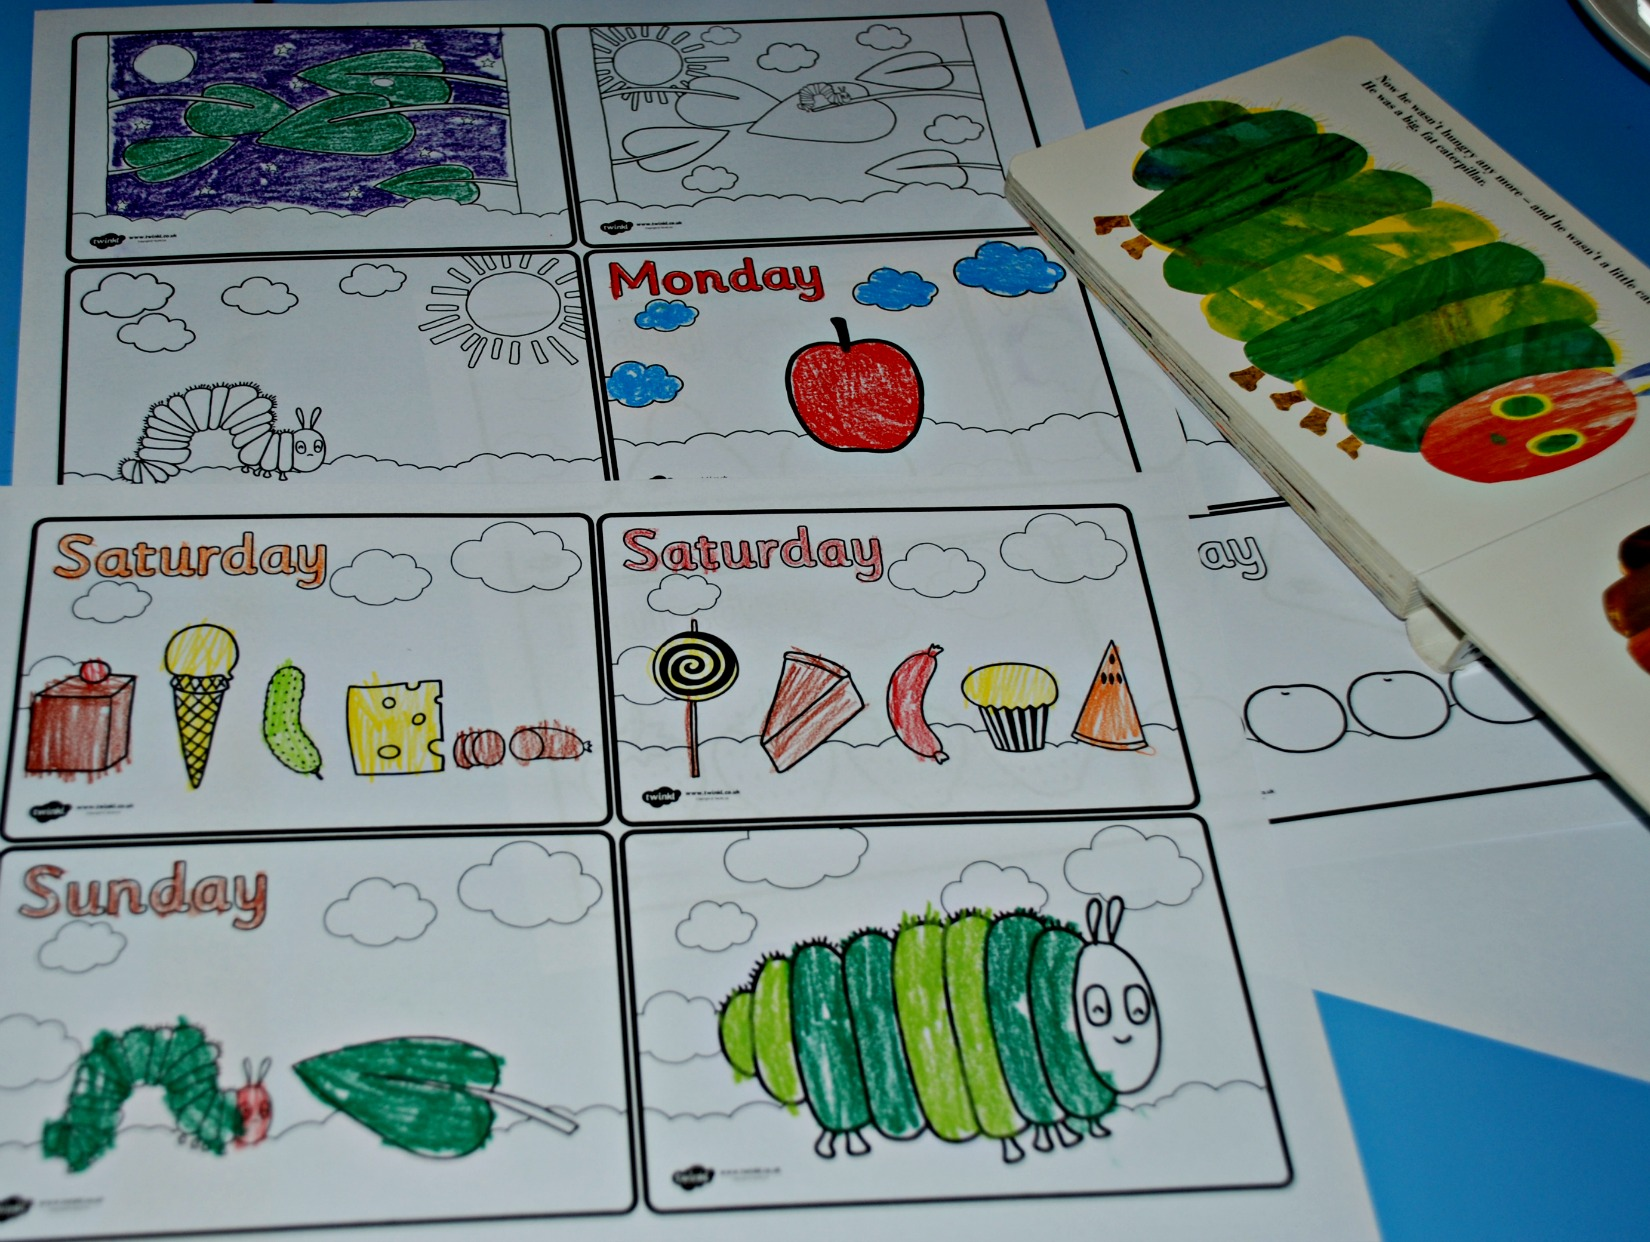 2017 05 the very hungry caterpillar lesson plans - The Very Hungry Caterpillar